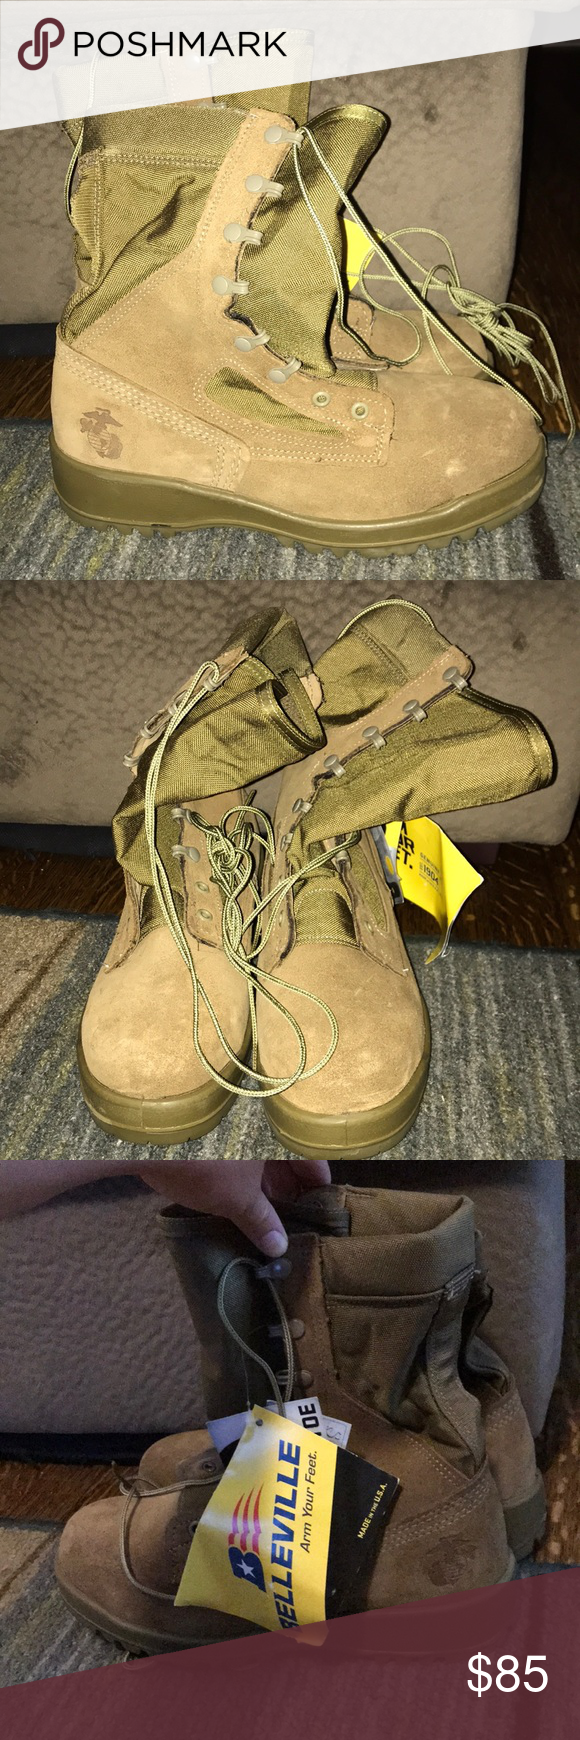 53dd8e015ef NEW Belleville Steel Toe USMC boots BRAND NEW WITH TAGS Belleville ...